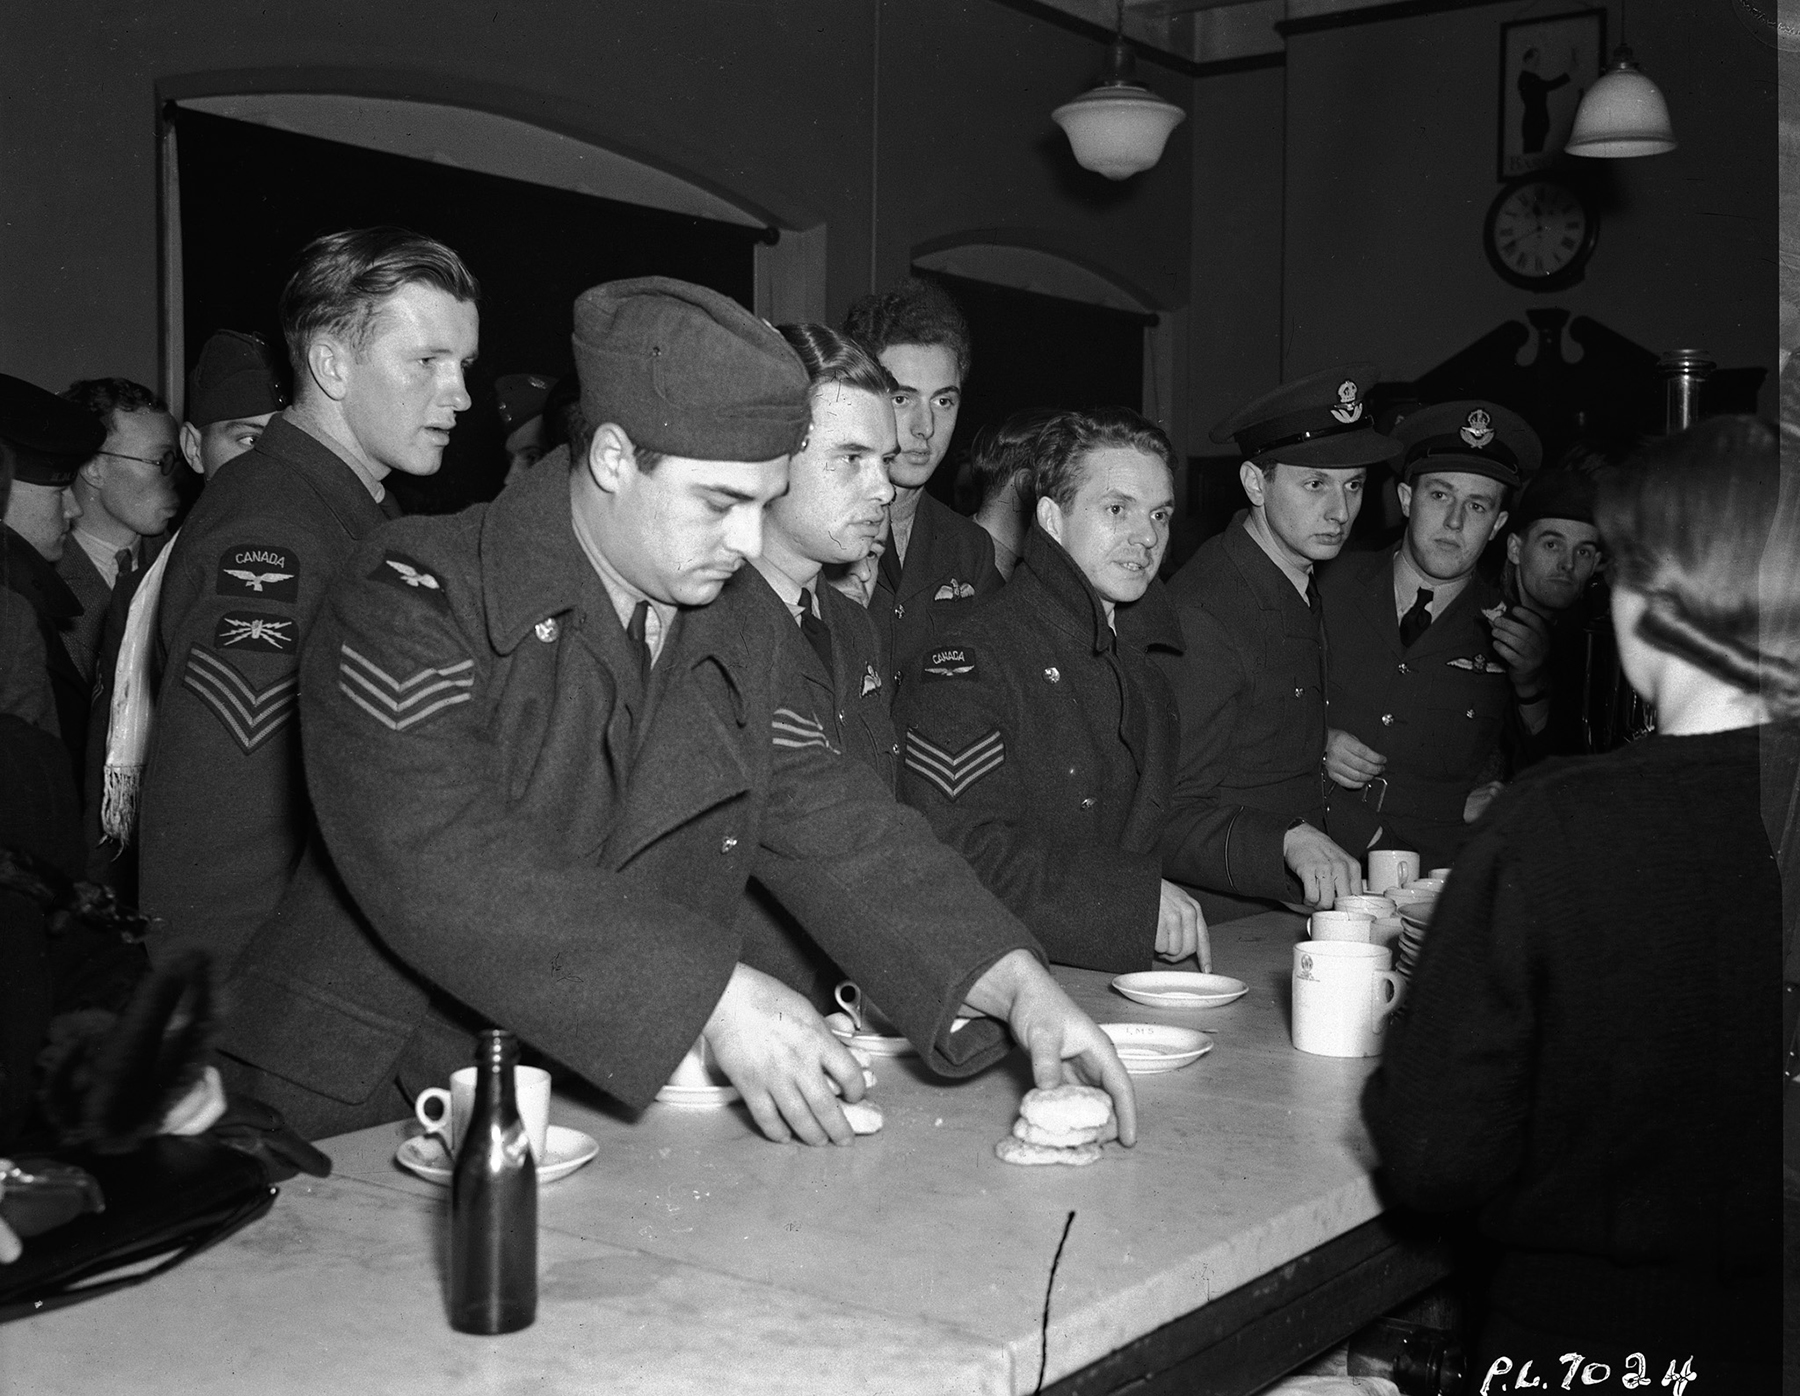 """Come and get it!"" is the order for all hands on December 26, 1941, as members of the Royal Canadian Air Force throng the restaurant car on a British troop train following disembarkation. They made up the largest RCAF draft to sail overseas, and arrived in time for Christmas. PHOTO: DND Archives, PL-7024"